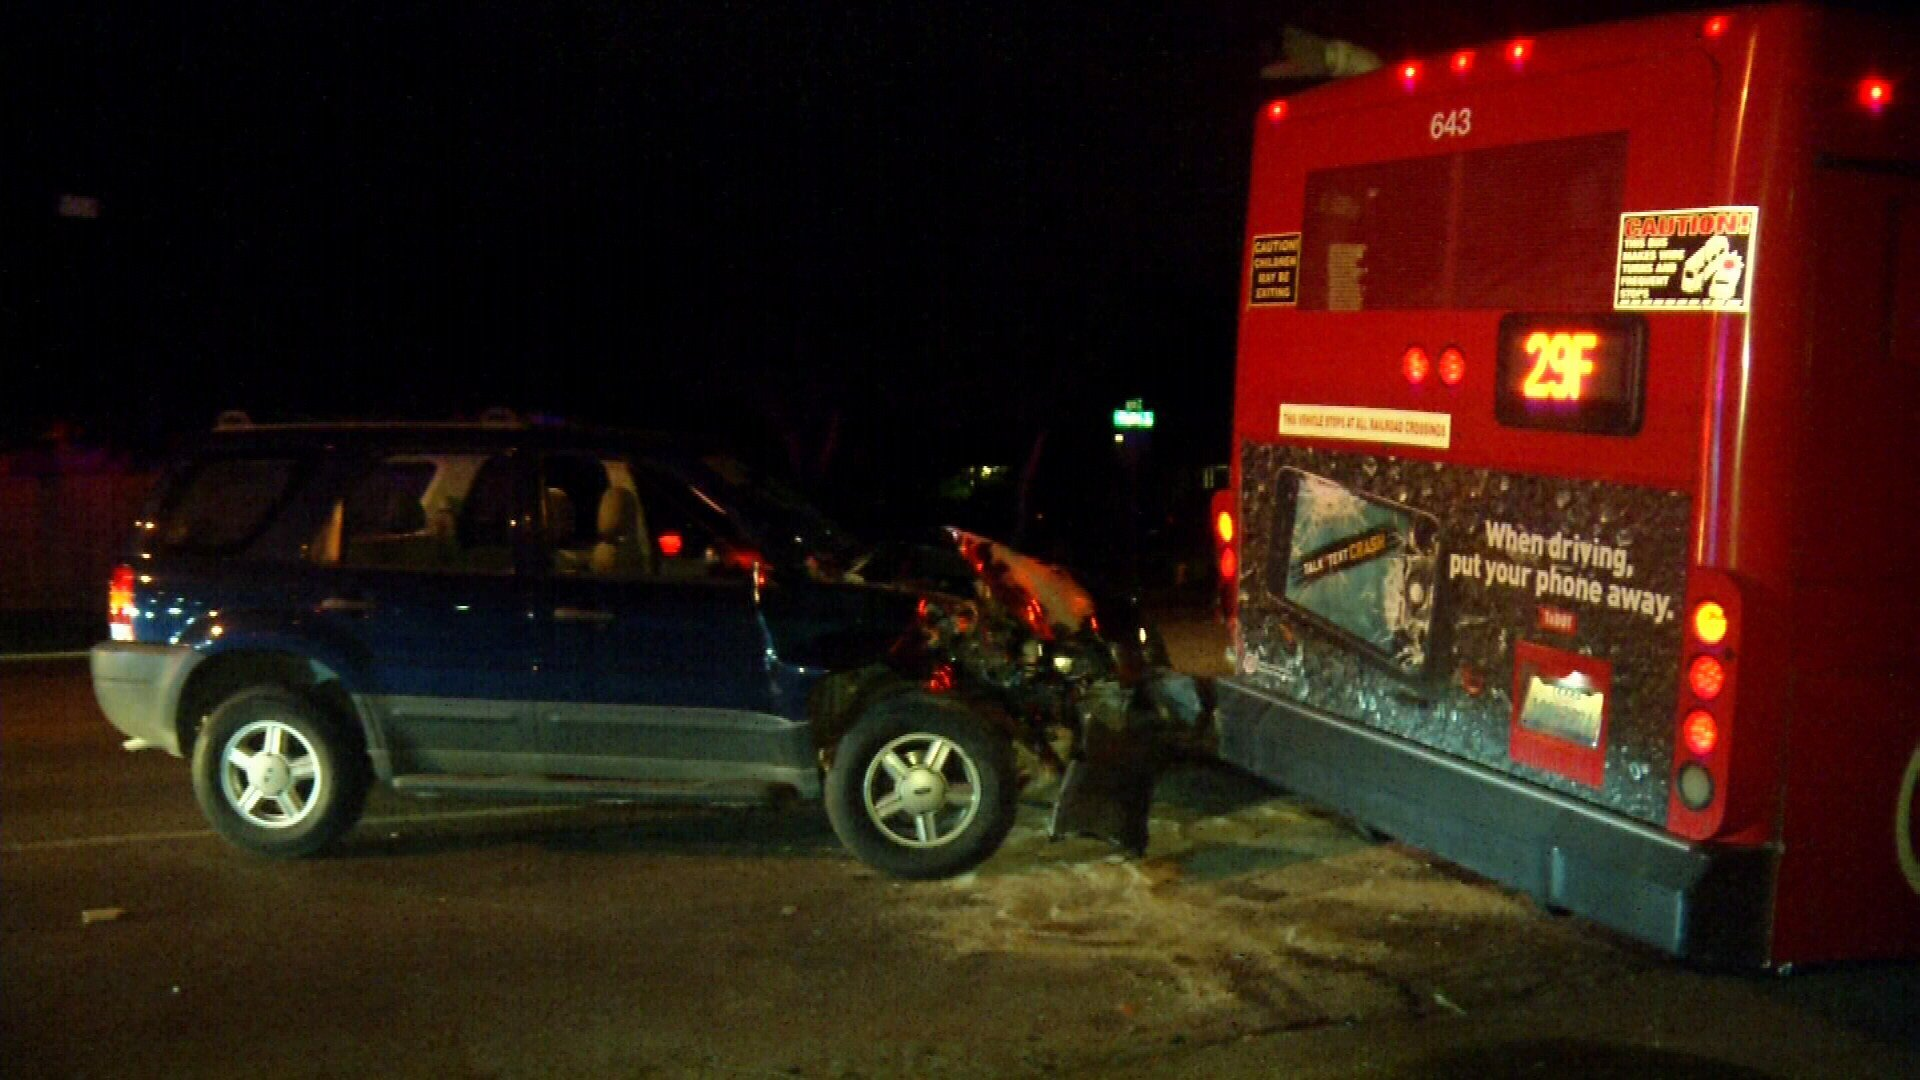 The accident occurred just before 10:00 p.m. Wednesday night.